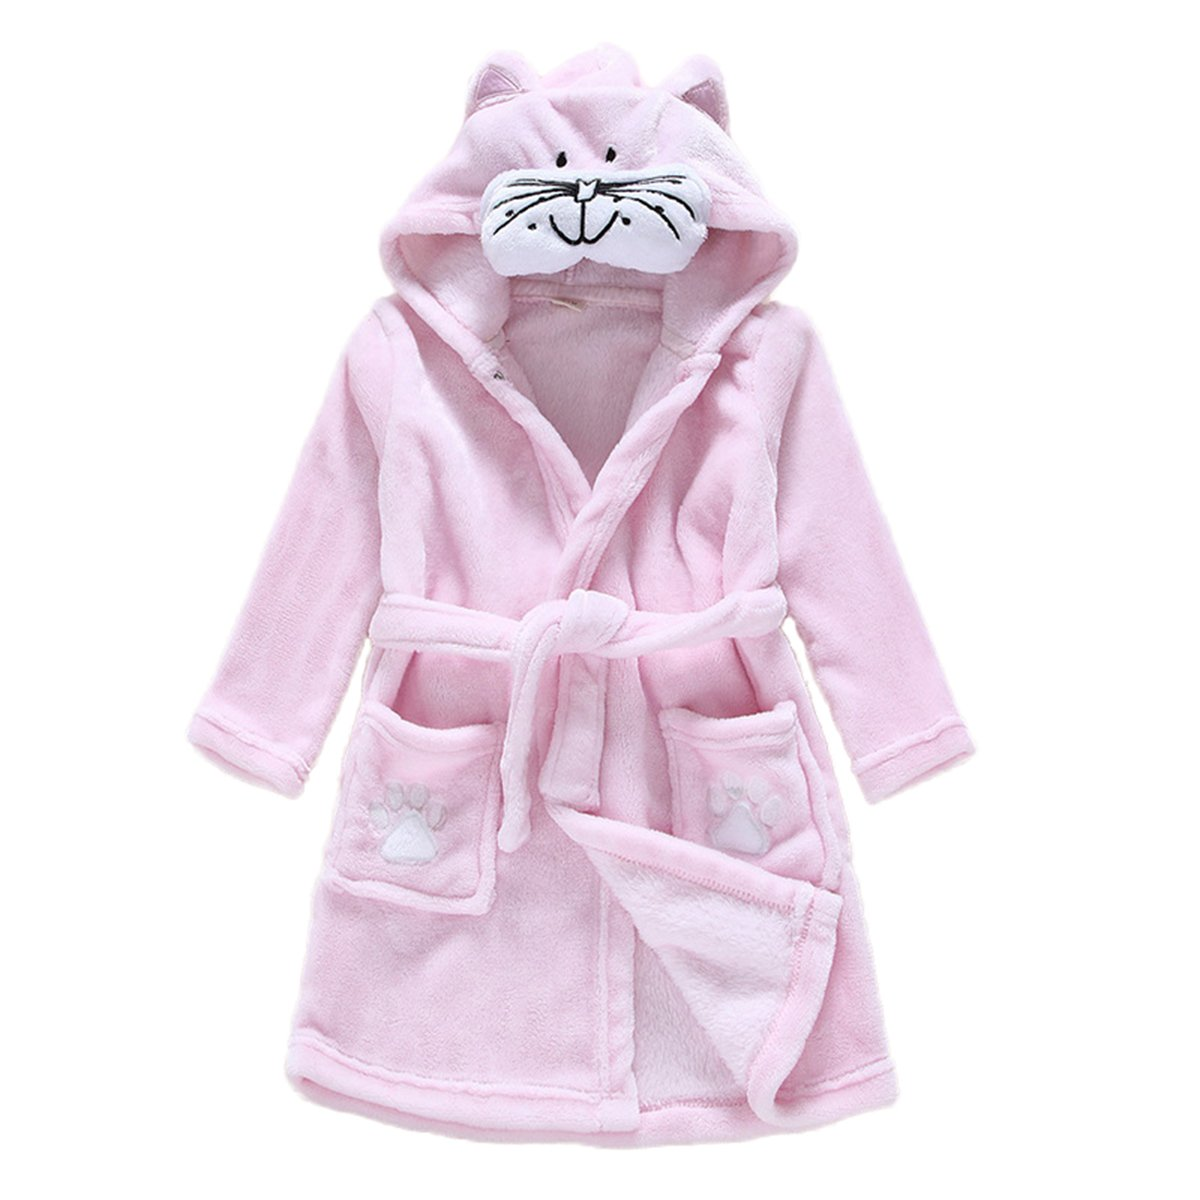 84a5965b24 JUNG KOOK Toddler Baby Boys Girls Cartoon Bathrobe Flannel Robe Winter  Night-Robe product image